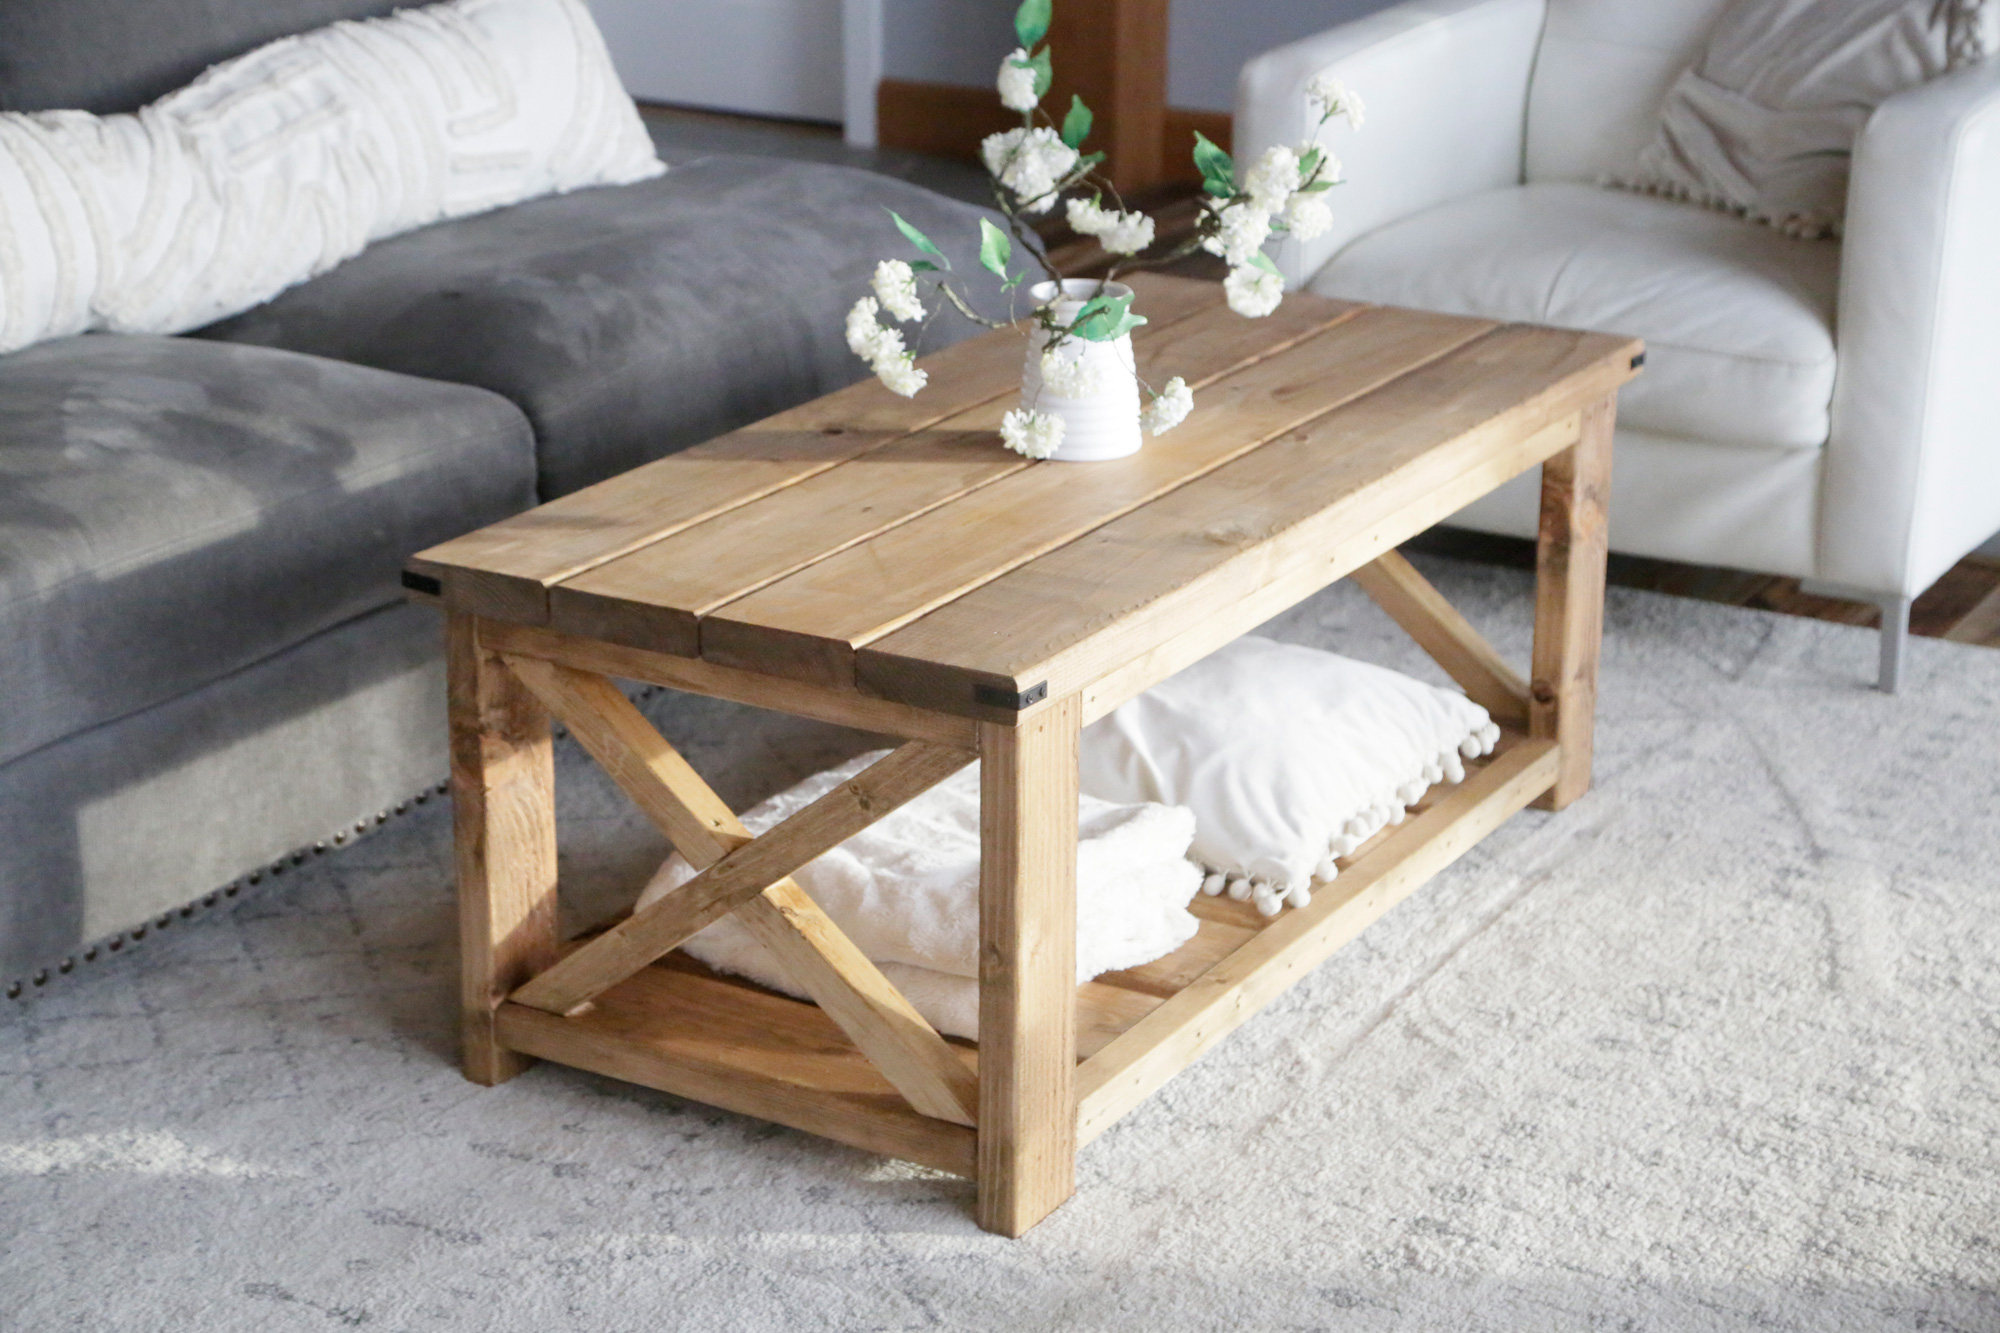 Farmhouse Coffee Table Beginner/Under $40 | Ana White on Coffee Table Plans  id=45120